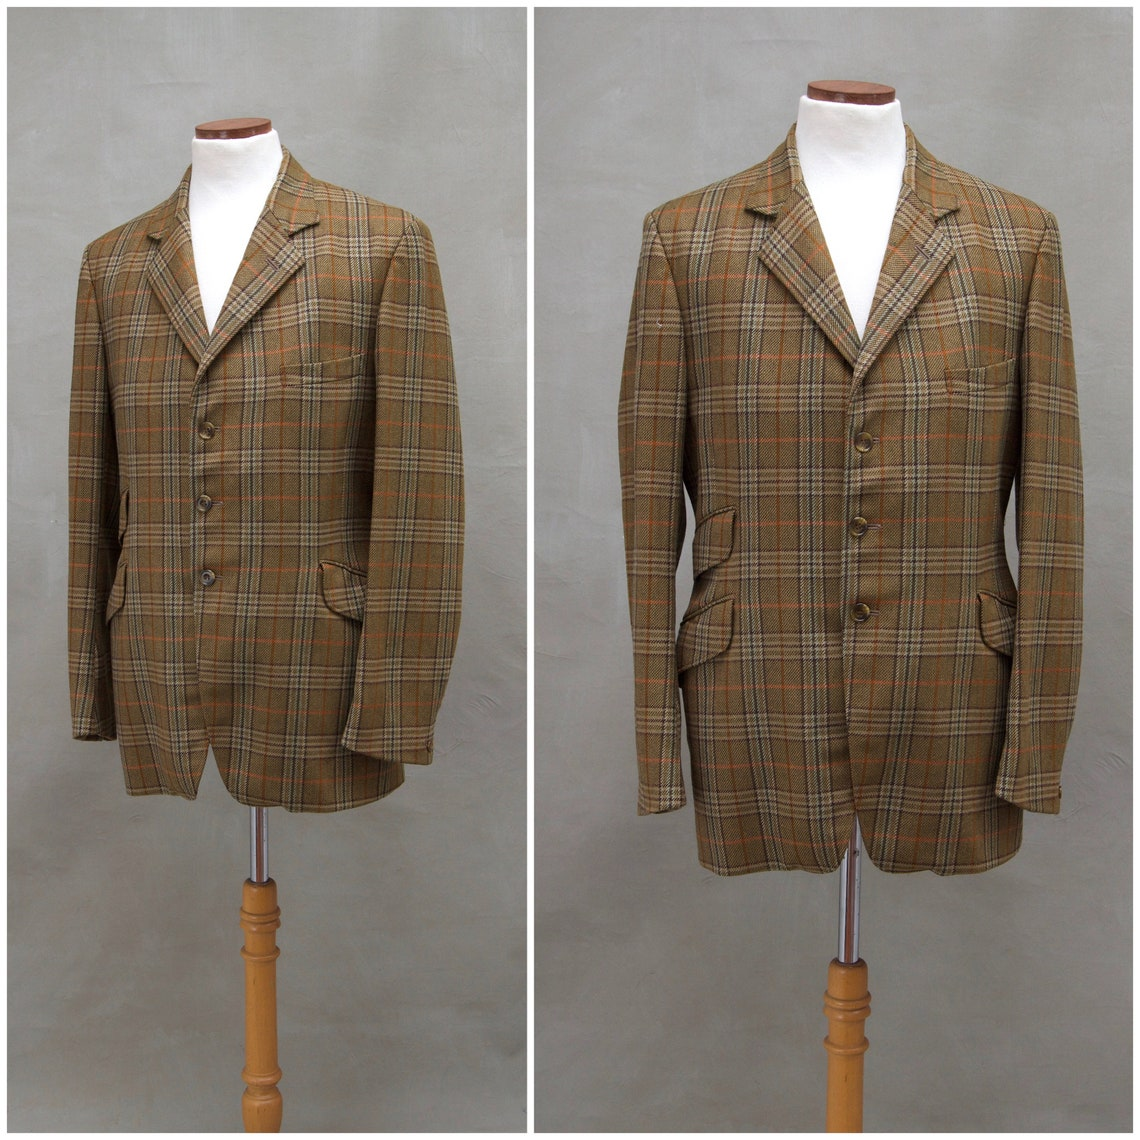 Vintage Blazer / Jacket, Men's 1970's Suit Style Lounge Brown Checked Wool Tweed Country Sports English Gent